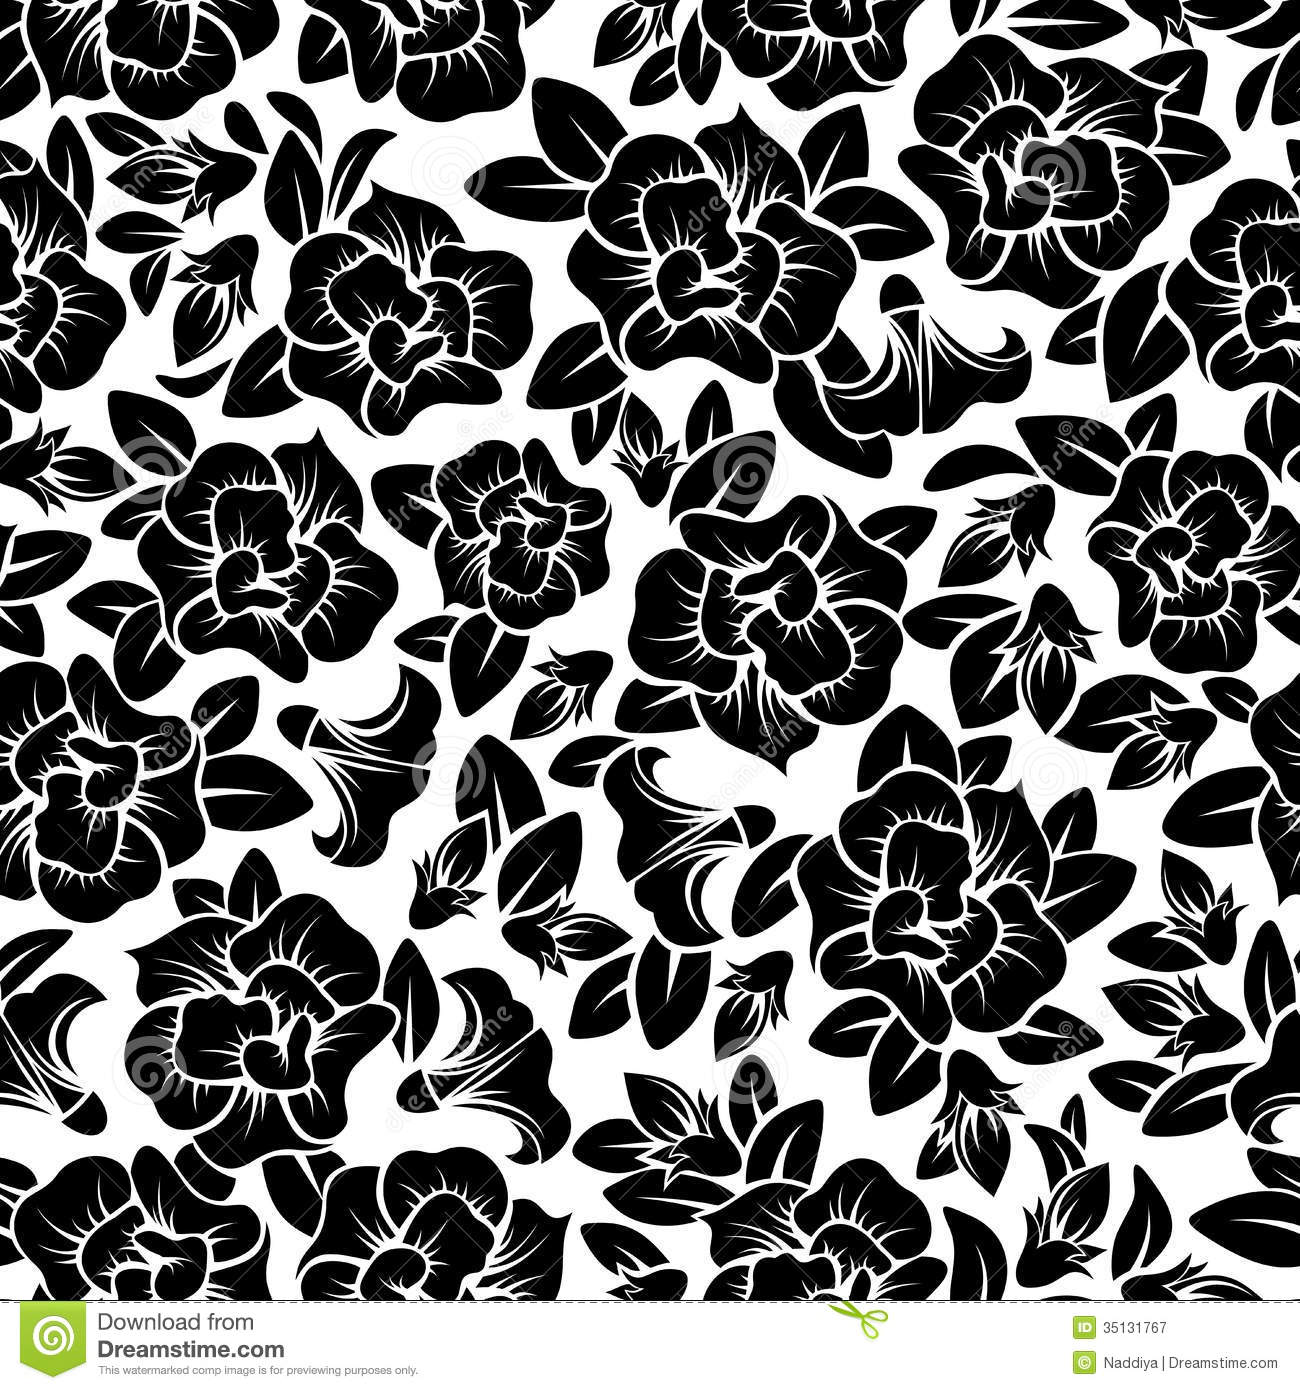 Simple Flower Patterns Black And White | www.pixshark.com ...